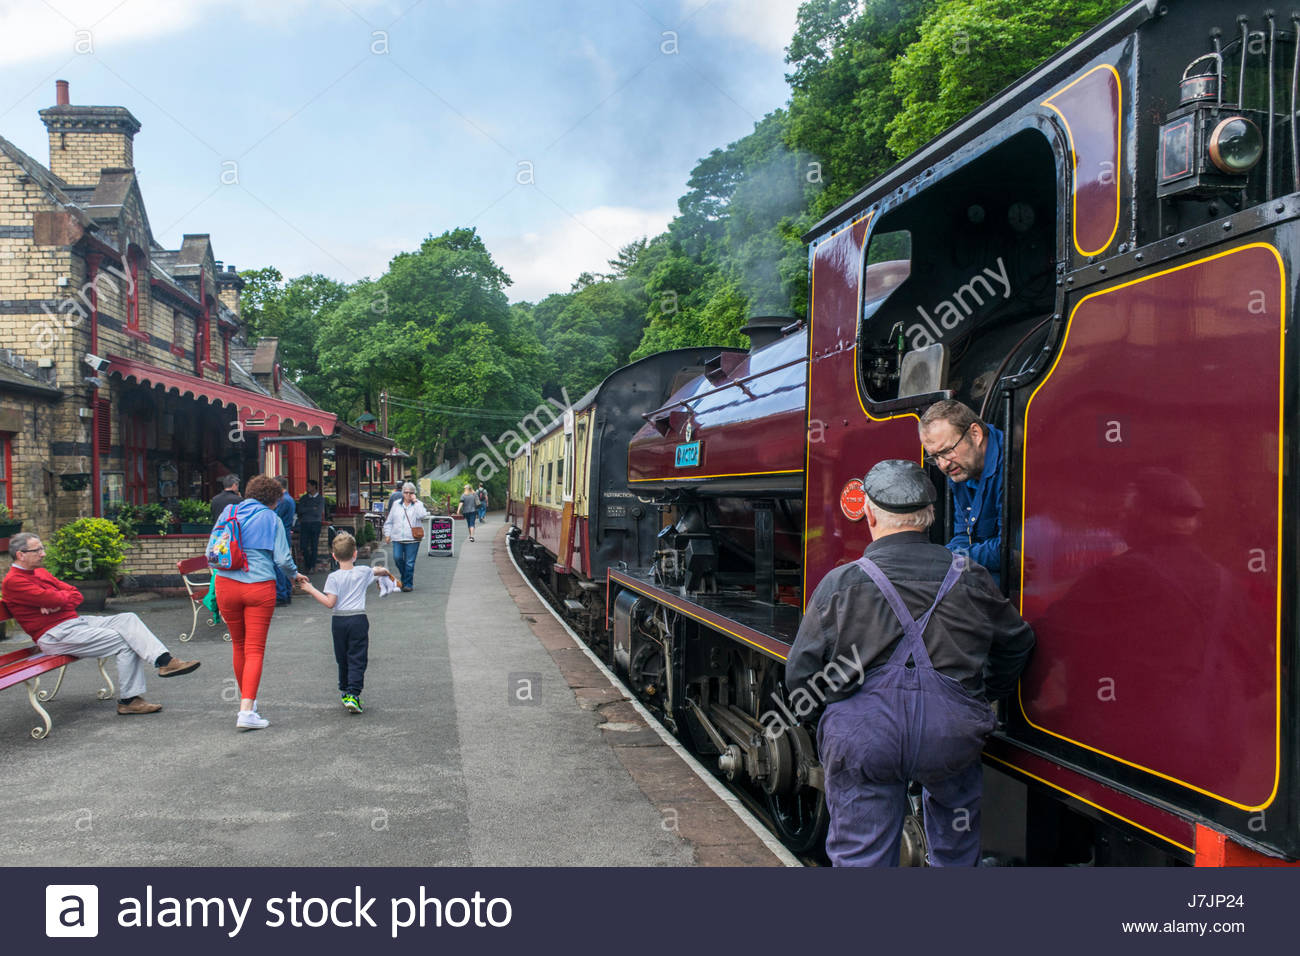 A saddle tank steam engine ready to depart from the platform at Lakeside on the Lakeside and Haverthwaite Railway. - Stock Image